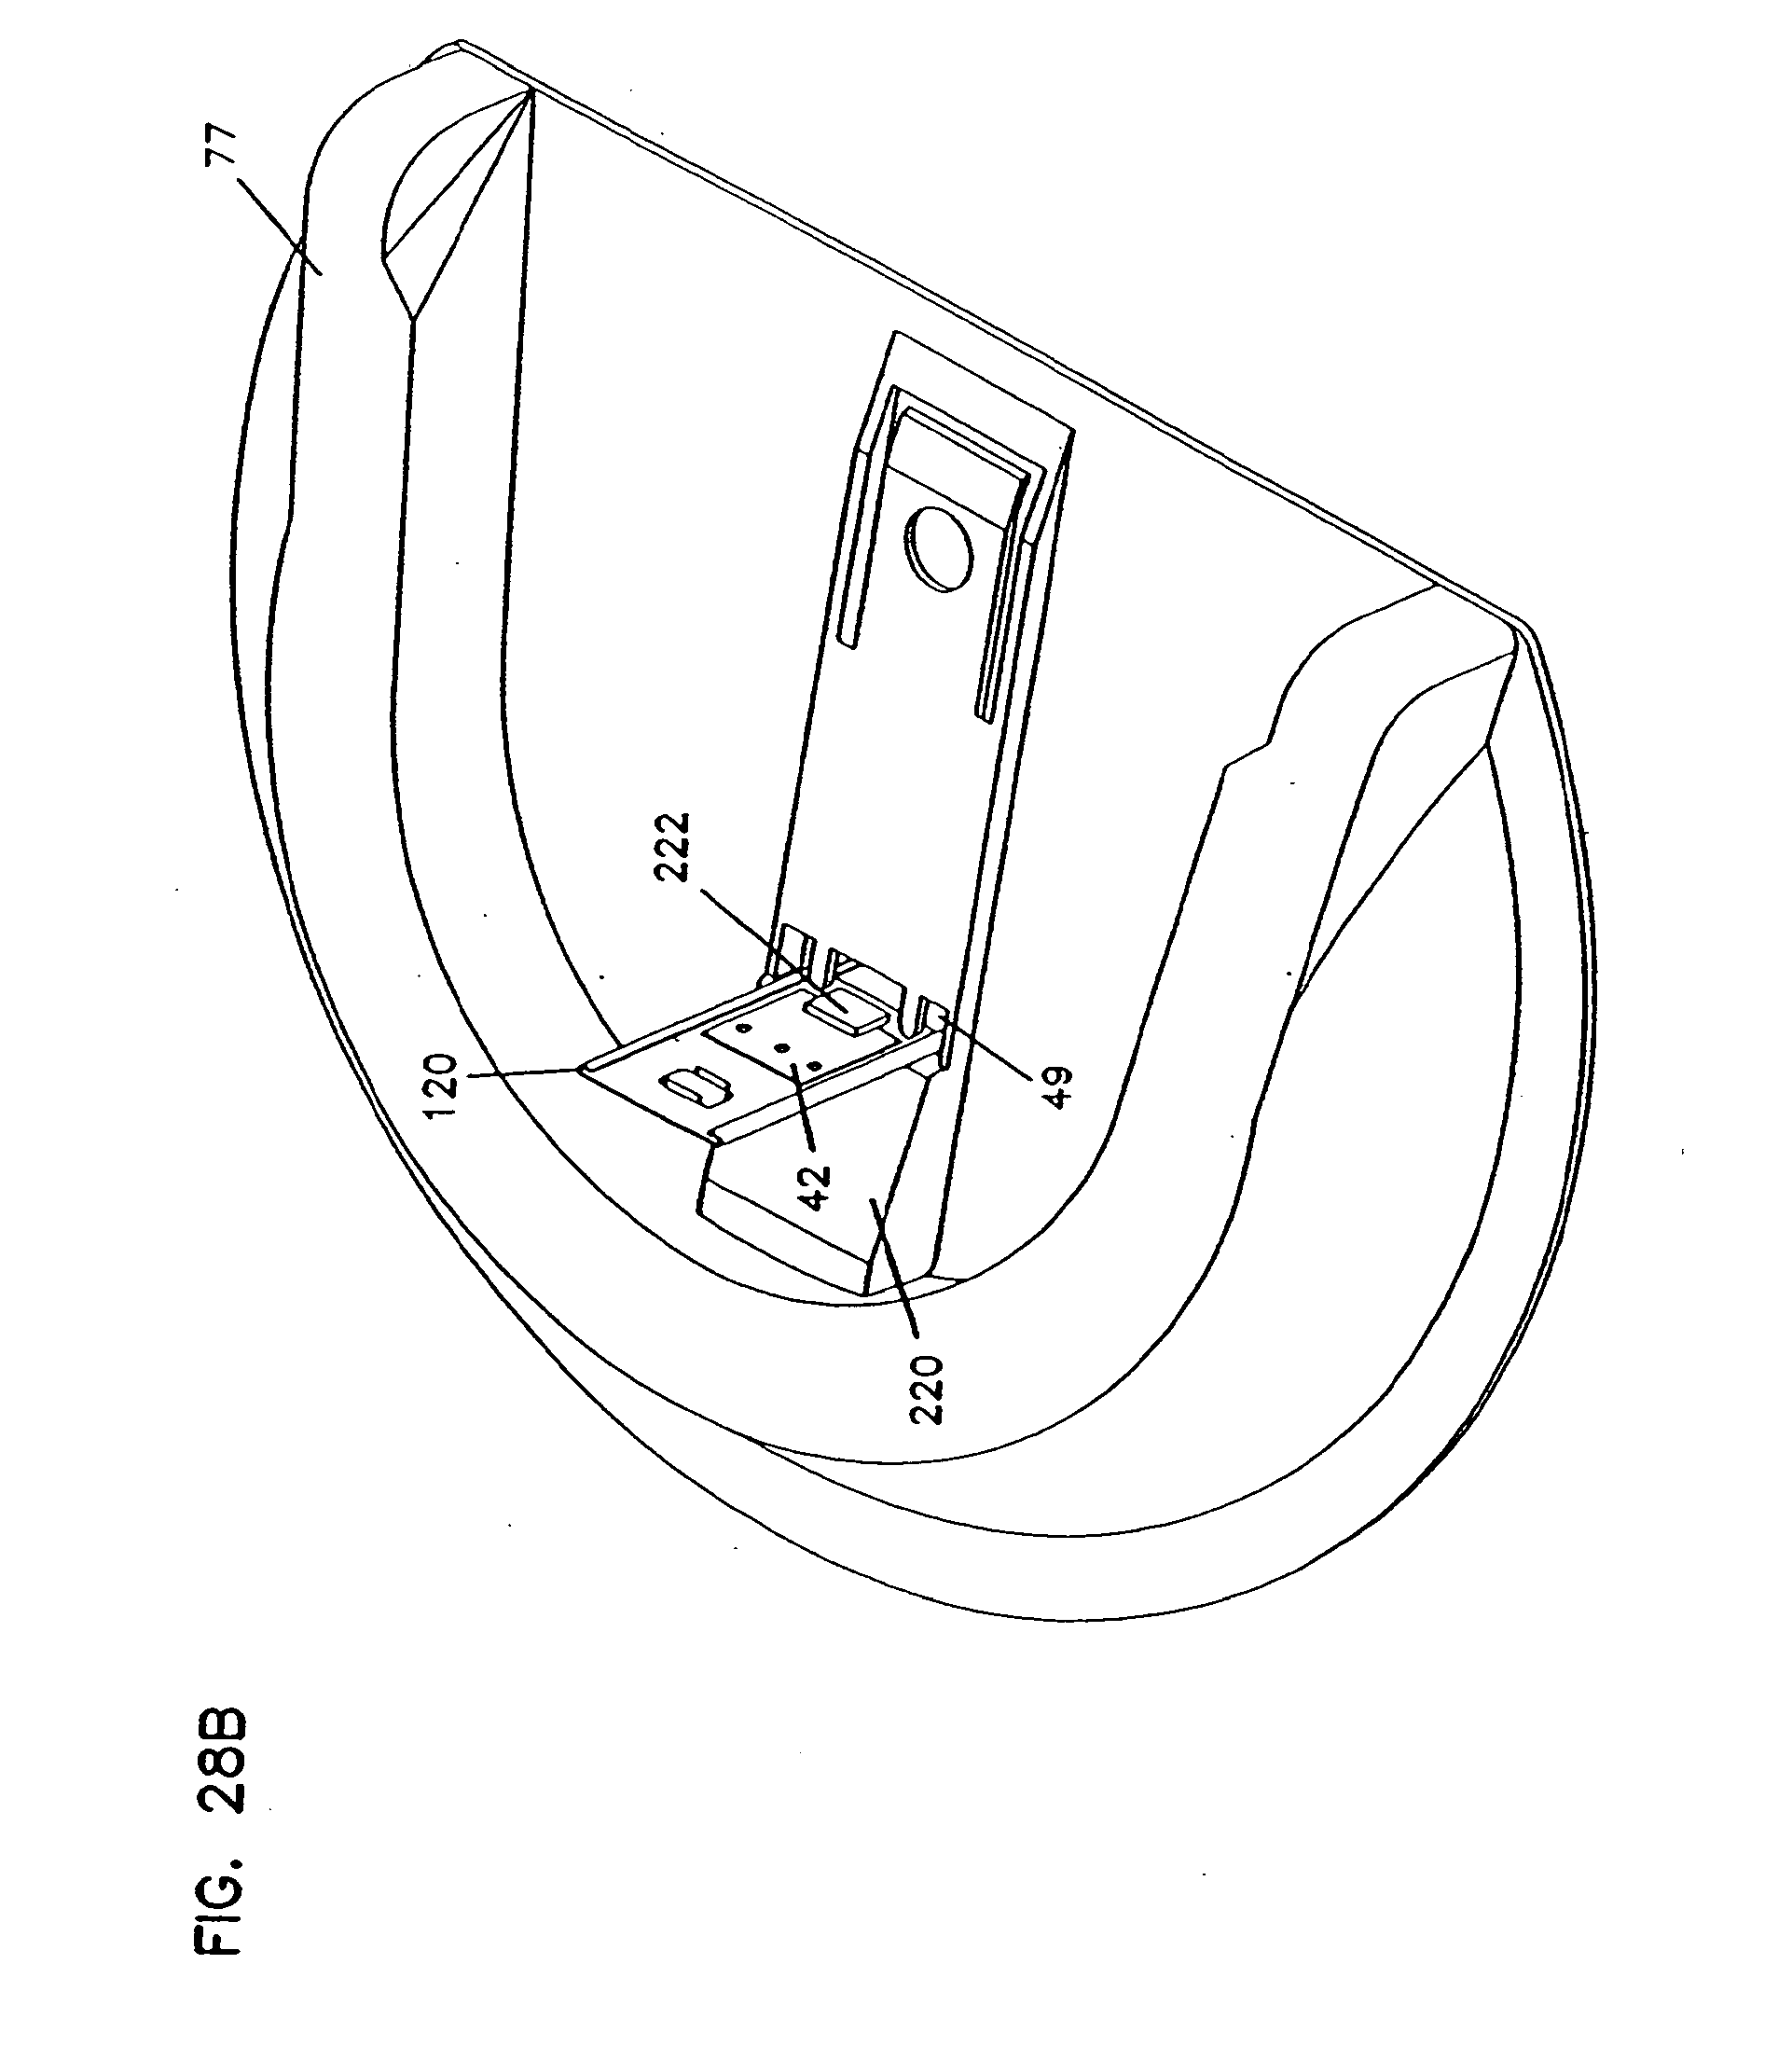 Us20100280346a1 analyte monitoring device and methods of use patents